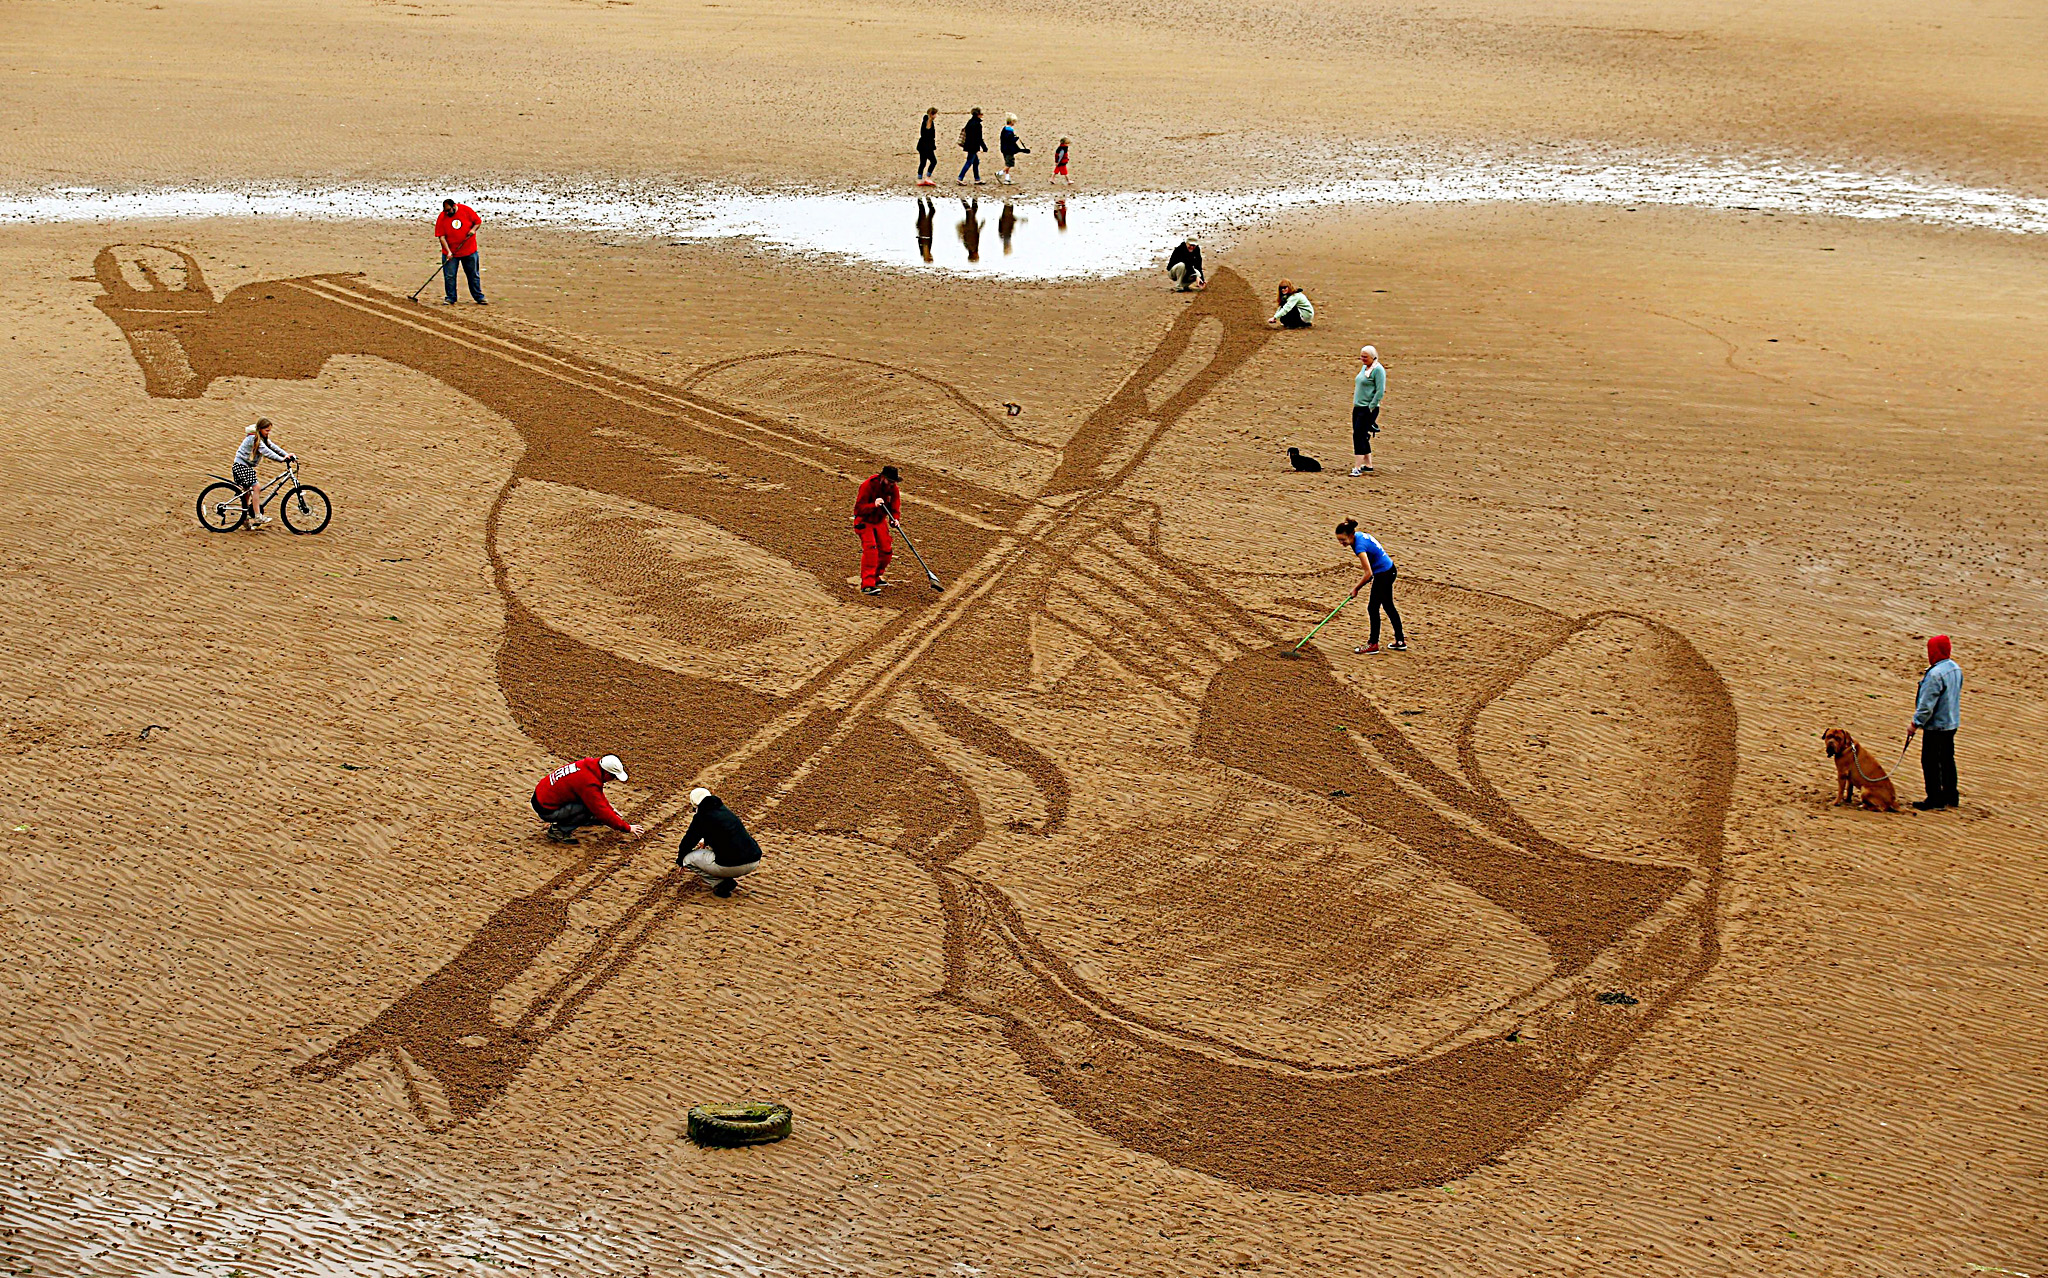 Sand art in Elie...People watch as Jamie Wardley (centre left) and Claire Jamieson (centre right) who are part of the Sand in Your Eye team, draw a violin on Elie Beach in Fife in honour of a 300 year old Stradivarius violin which is on loan to the 2015 East Neuk Festival. PRESS ASSOCIATION Photo. Picture date: Monday June 29, 2015. The drawing has been created using sticks and rakes. Photo credit should read: Andrew Milligan/PA Wire